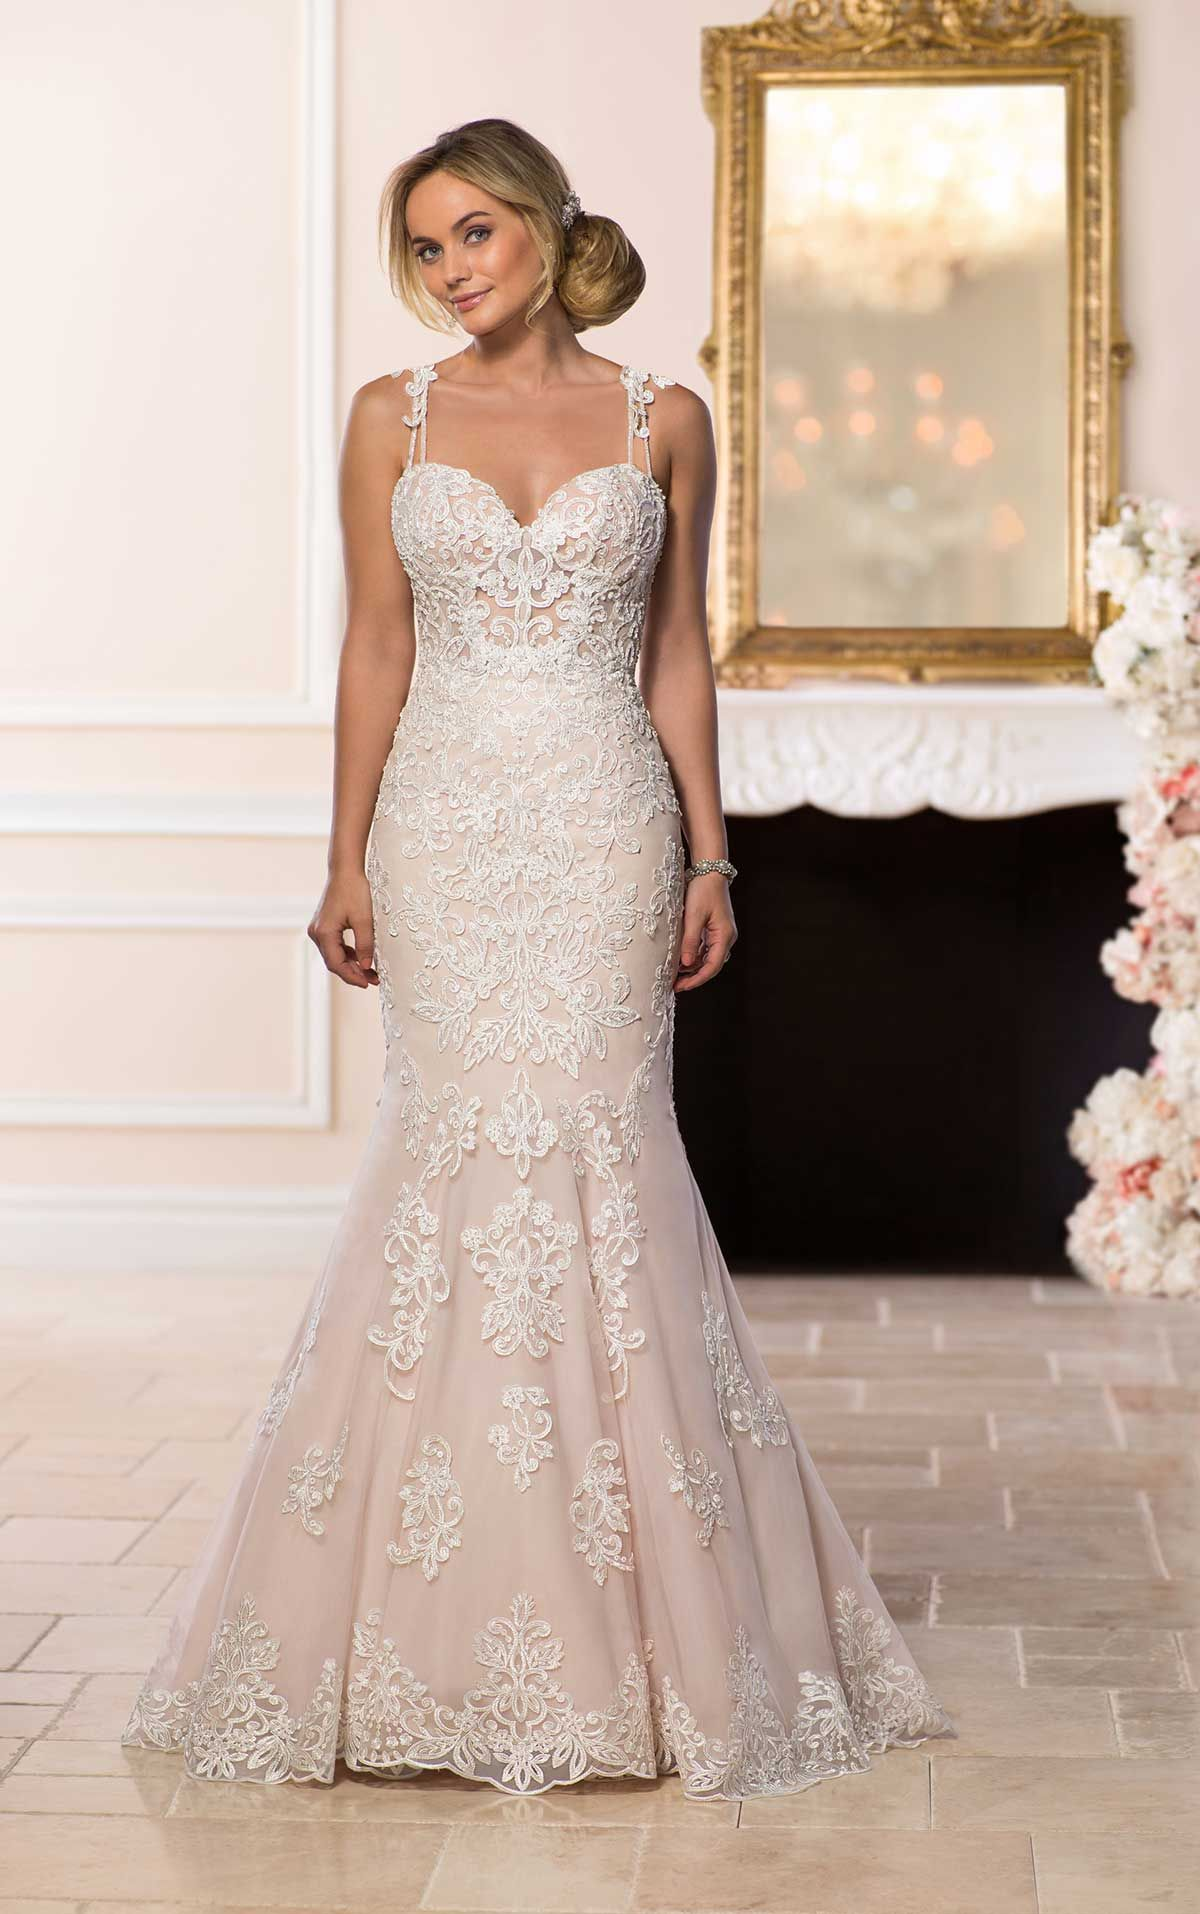 Bohoinspired lace mixes with romantic floral details to create a